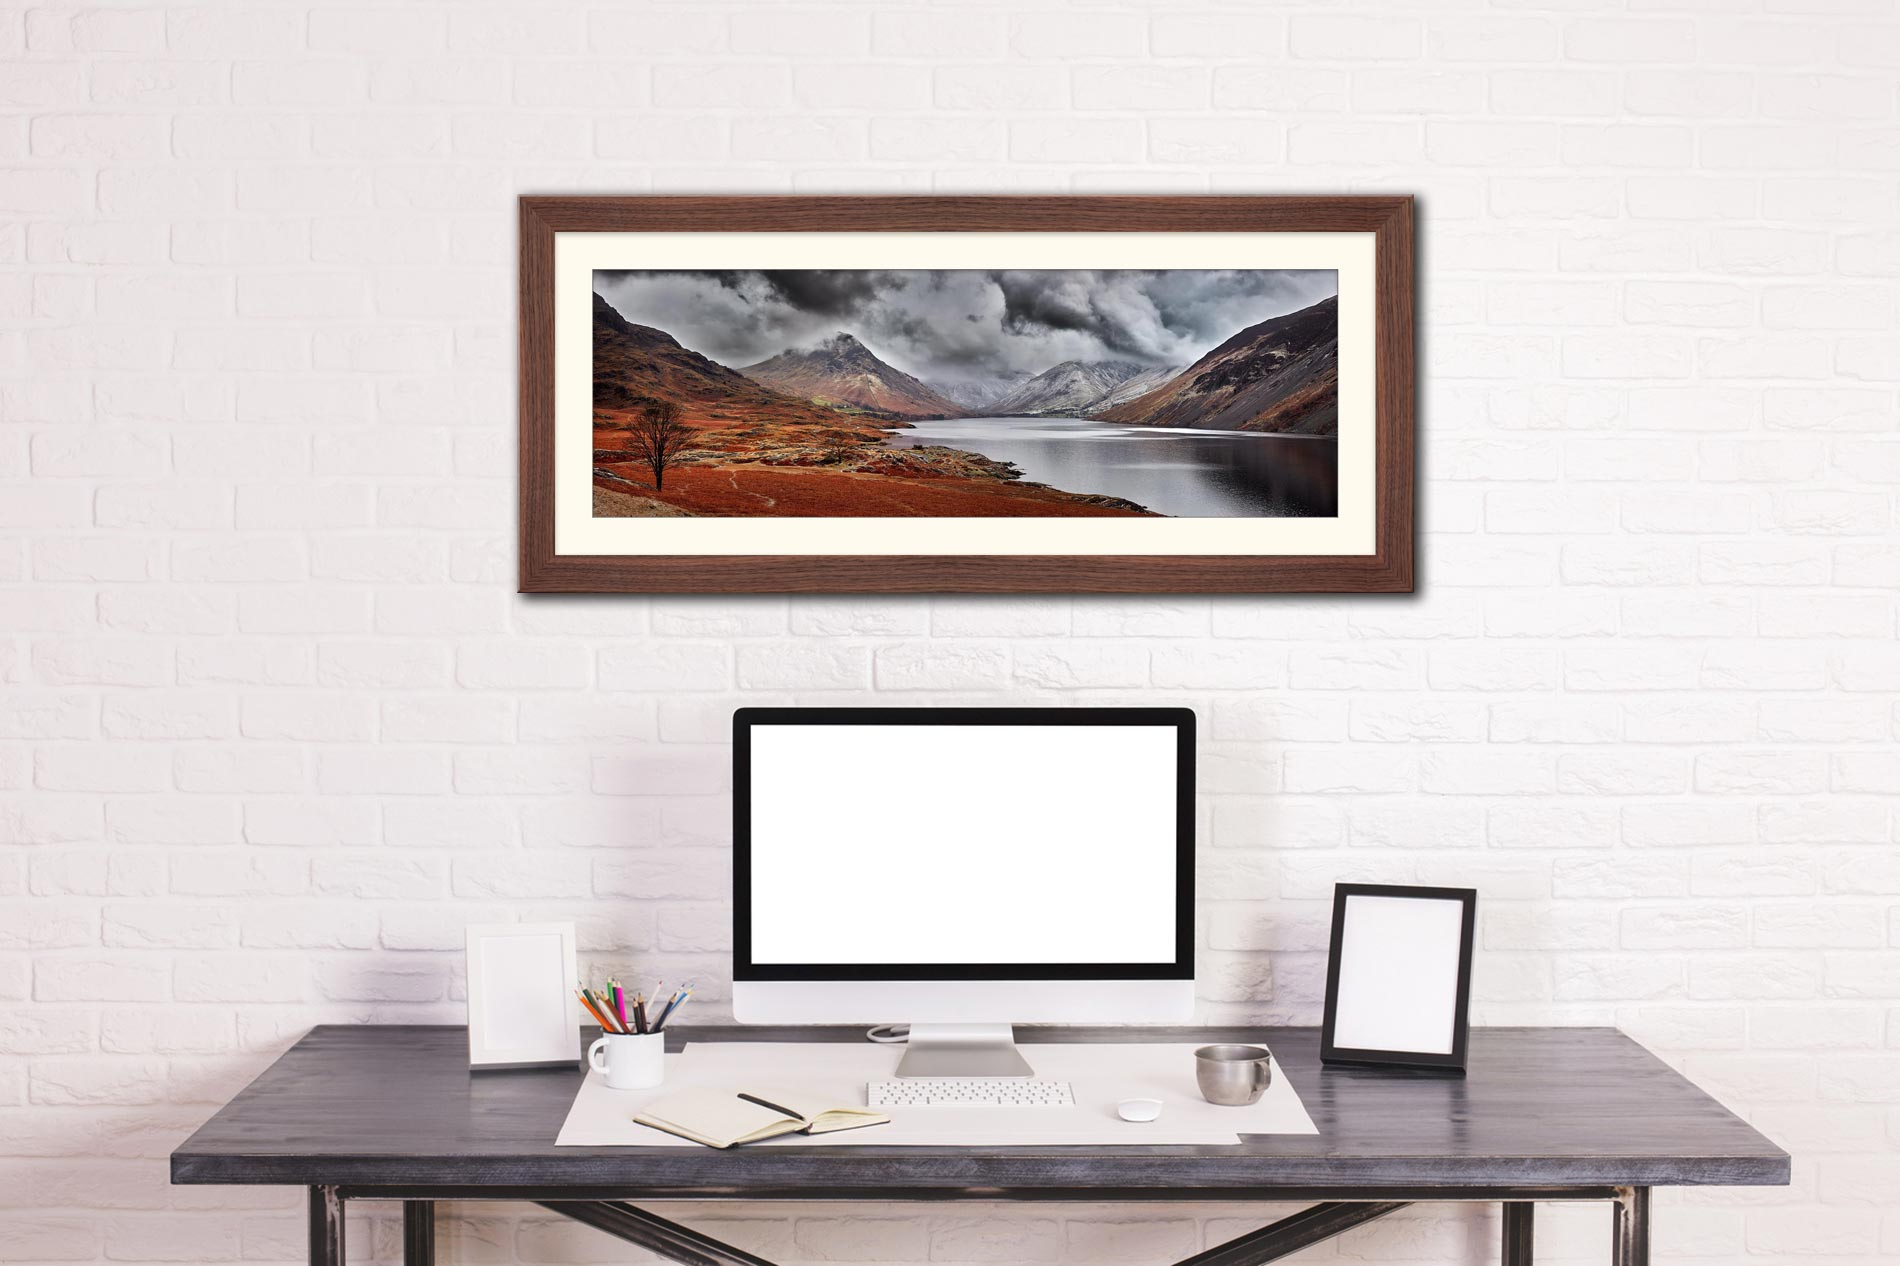 Dark Skies Over Wast Water - Framed Print with Mount on Wall